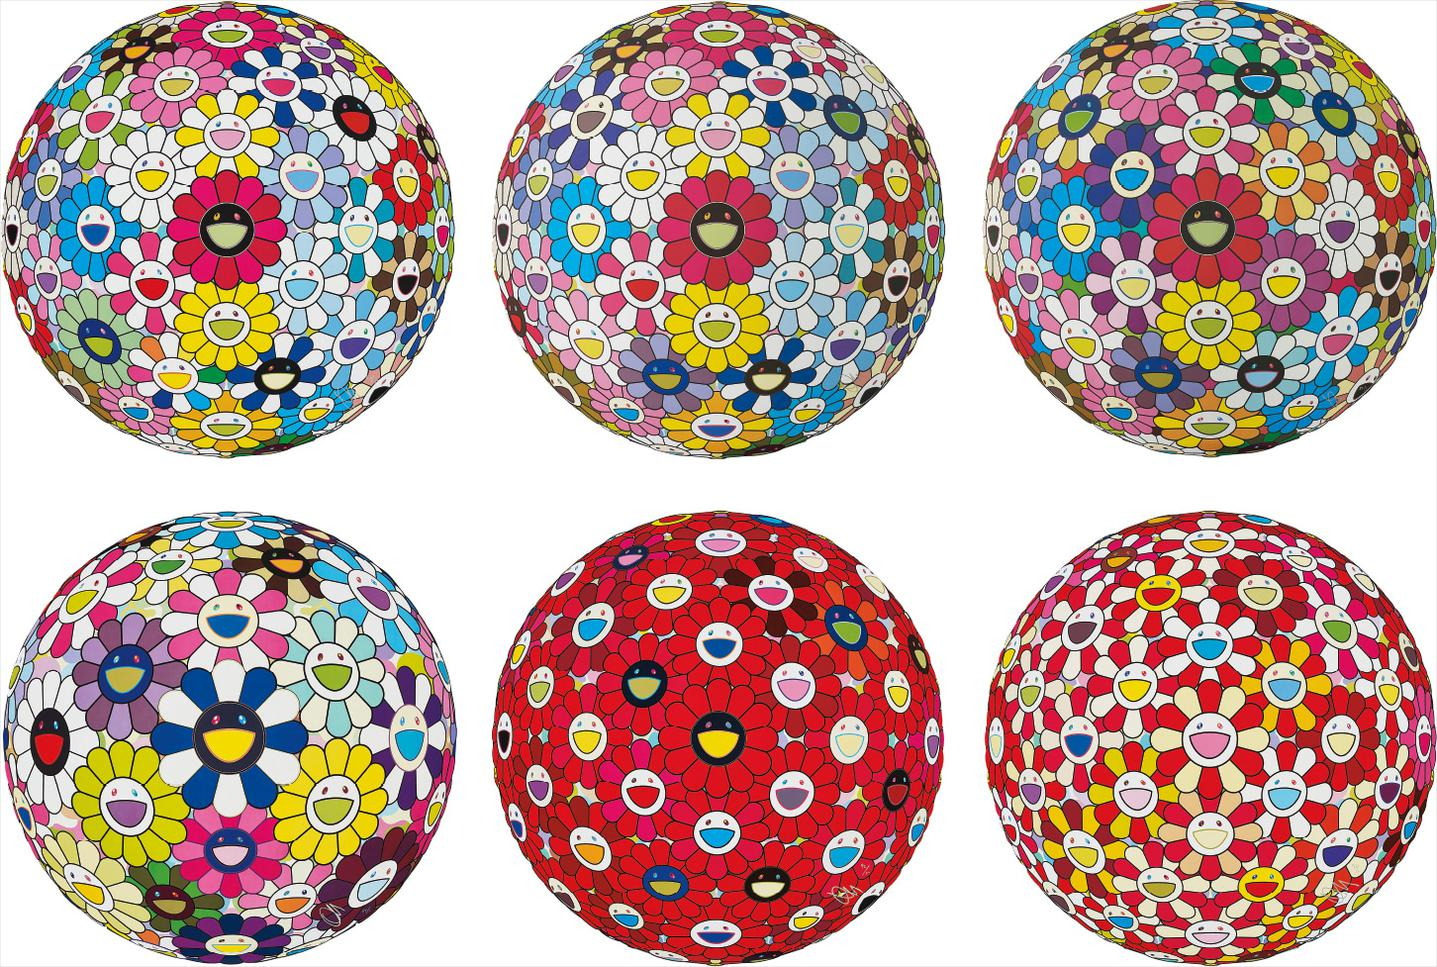 Takashi Murakami-Hold Me Tight!; Space Show; Flowerball Multicolor; Awakening; Flowerball: Bright Red; And Flowerball: Koi/Red-Crowned Crane Vermilion-2017